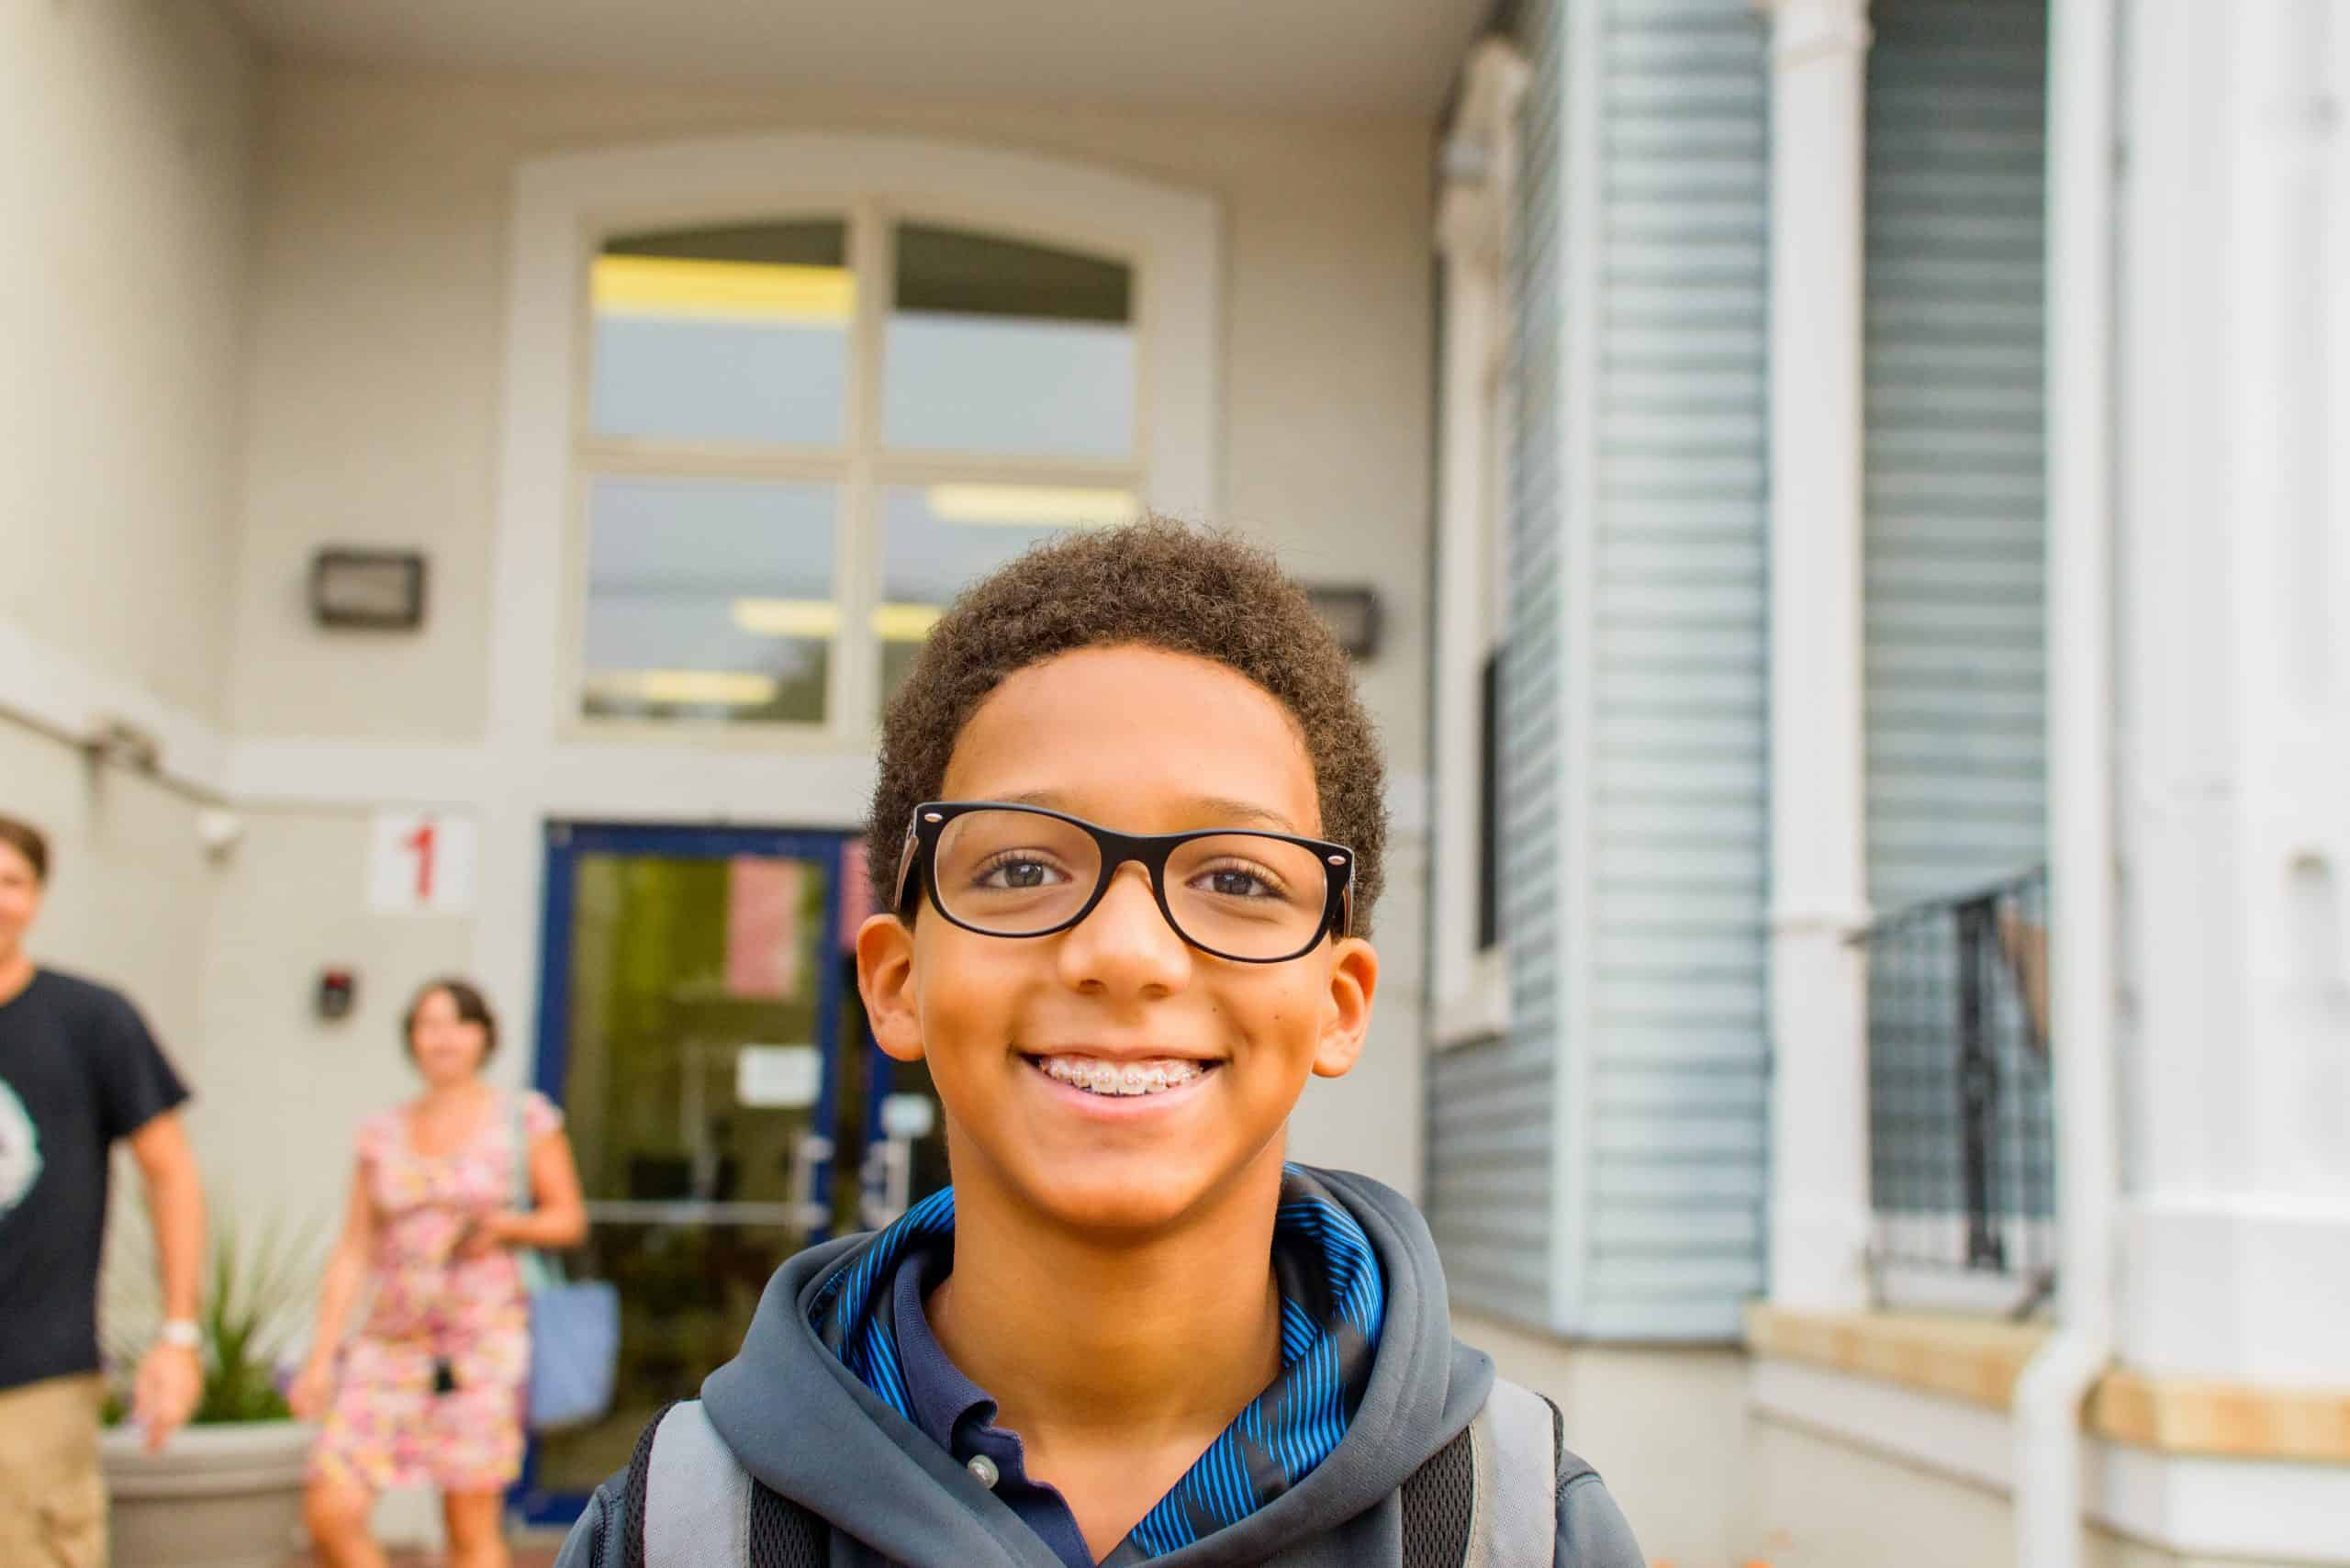 A child smiling in front of a house on the first day of school.